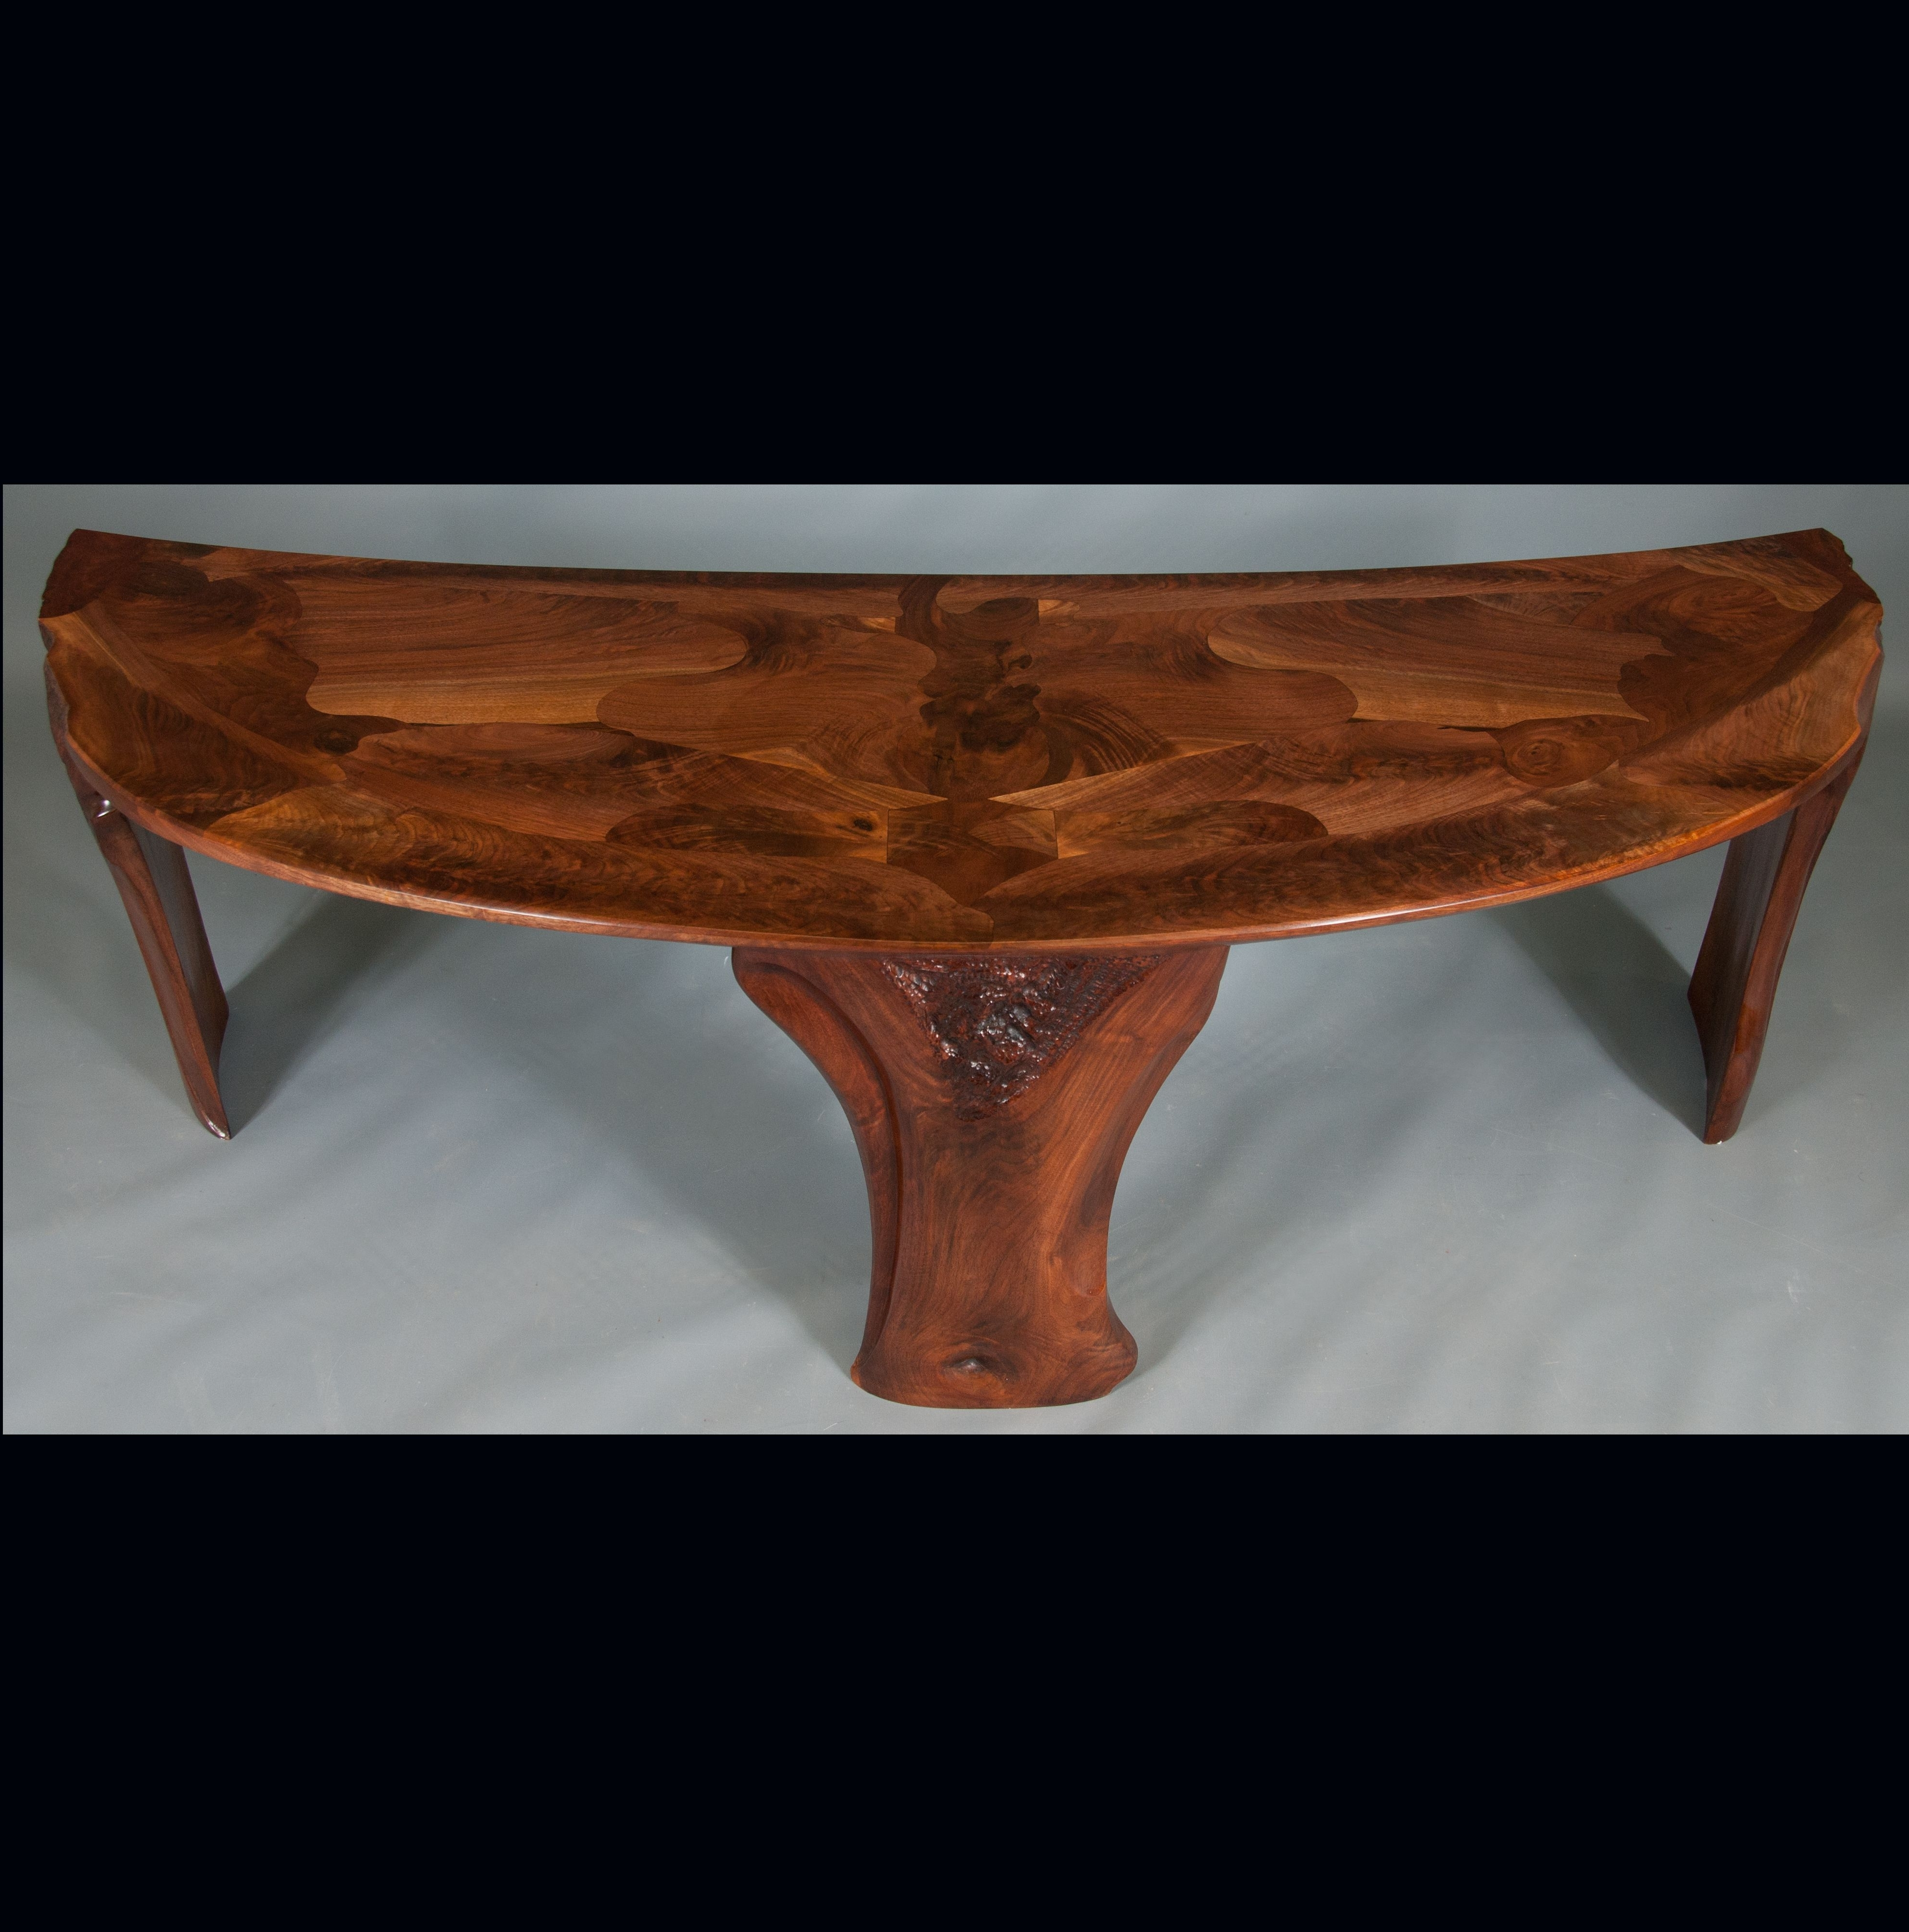 Most Recent Expressionist Coffee Tables In Custom Made Abstract Organic Expressionism In Furniture™ Walnut (View 6 of 20)